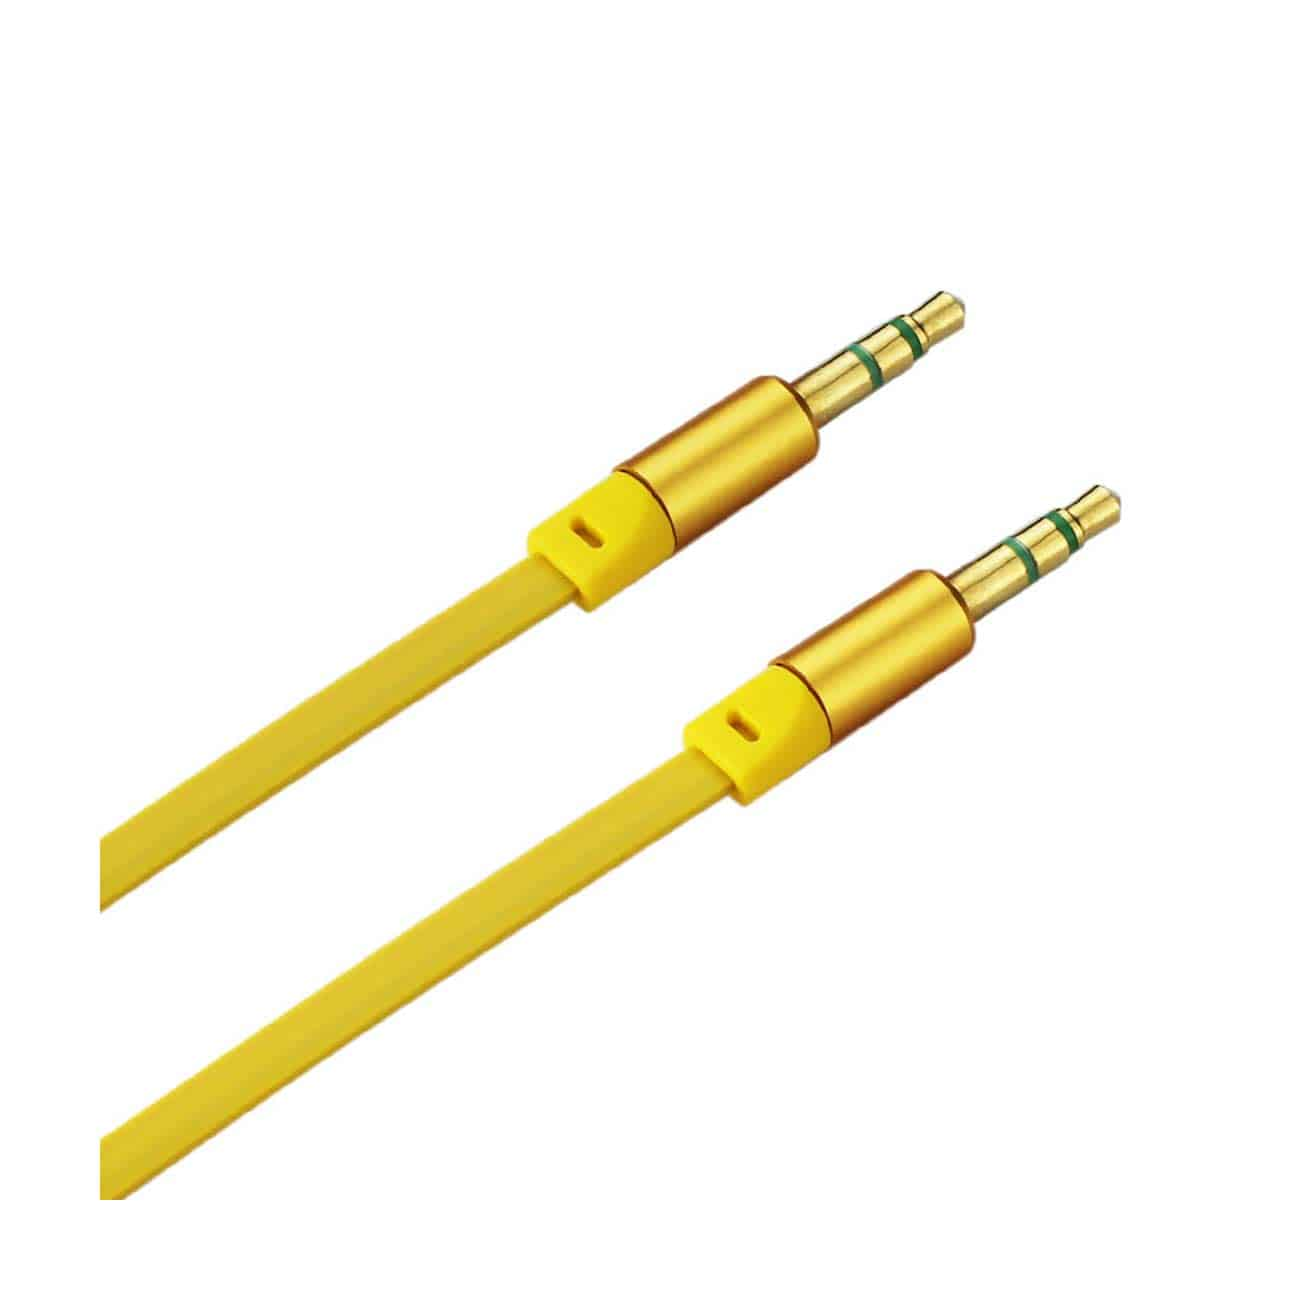 STEREO MALE TO MALE FLAT AUDIO CABLE 3.2FT IN YELLOW